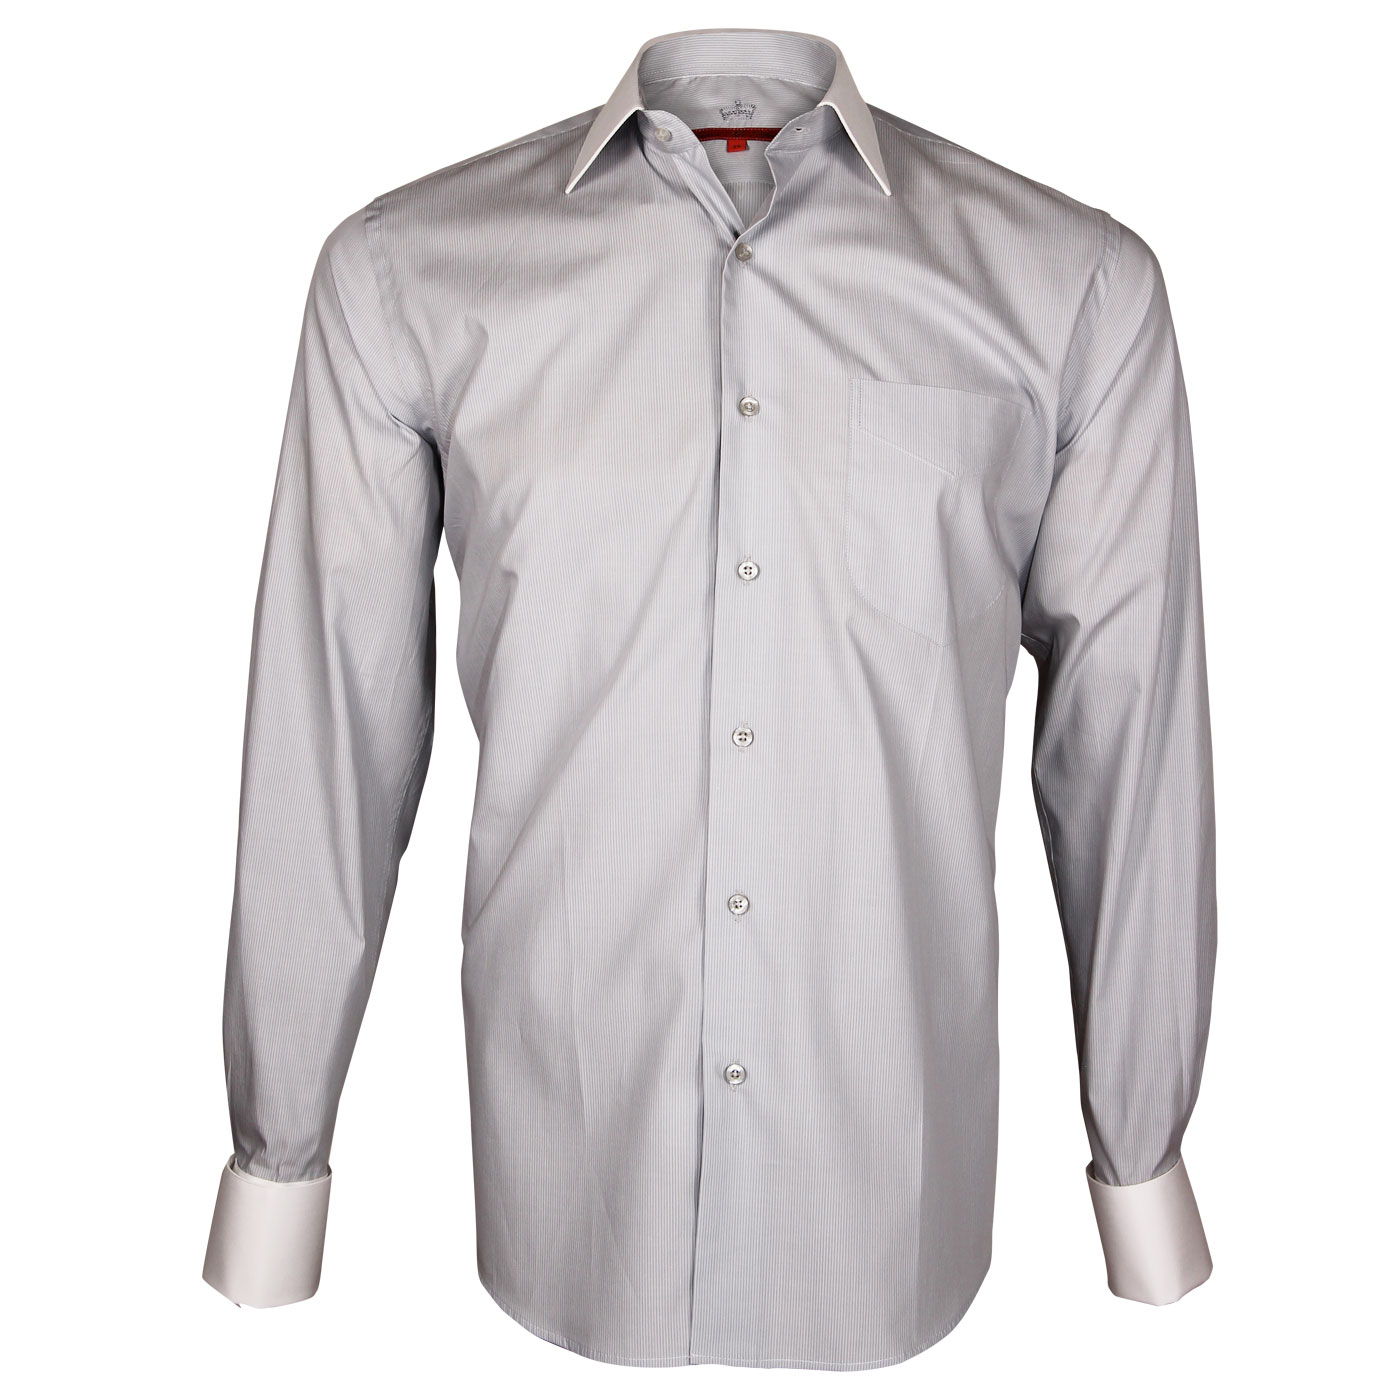 French Cuffs Shirt  High Quality Dress shirt for Men